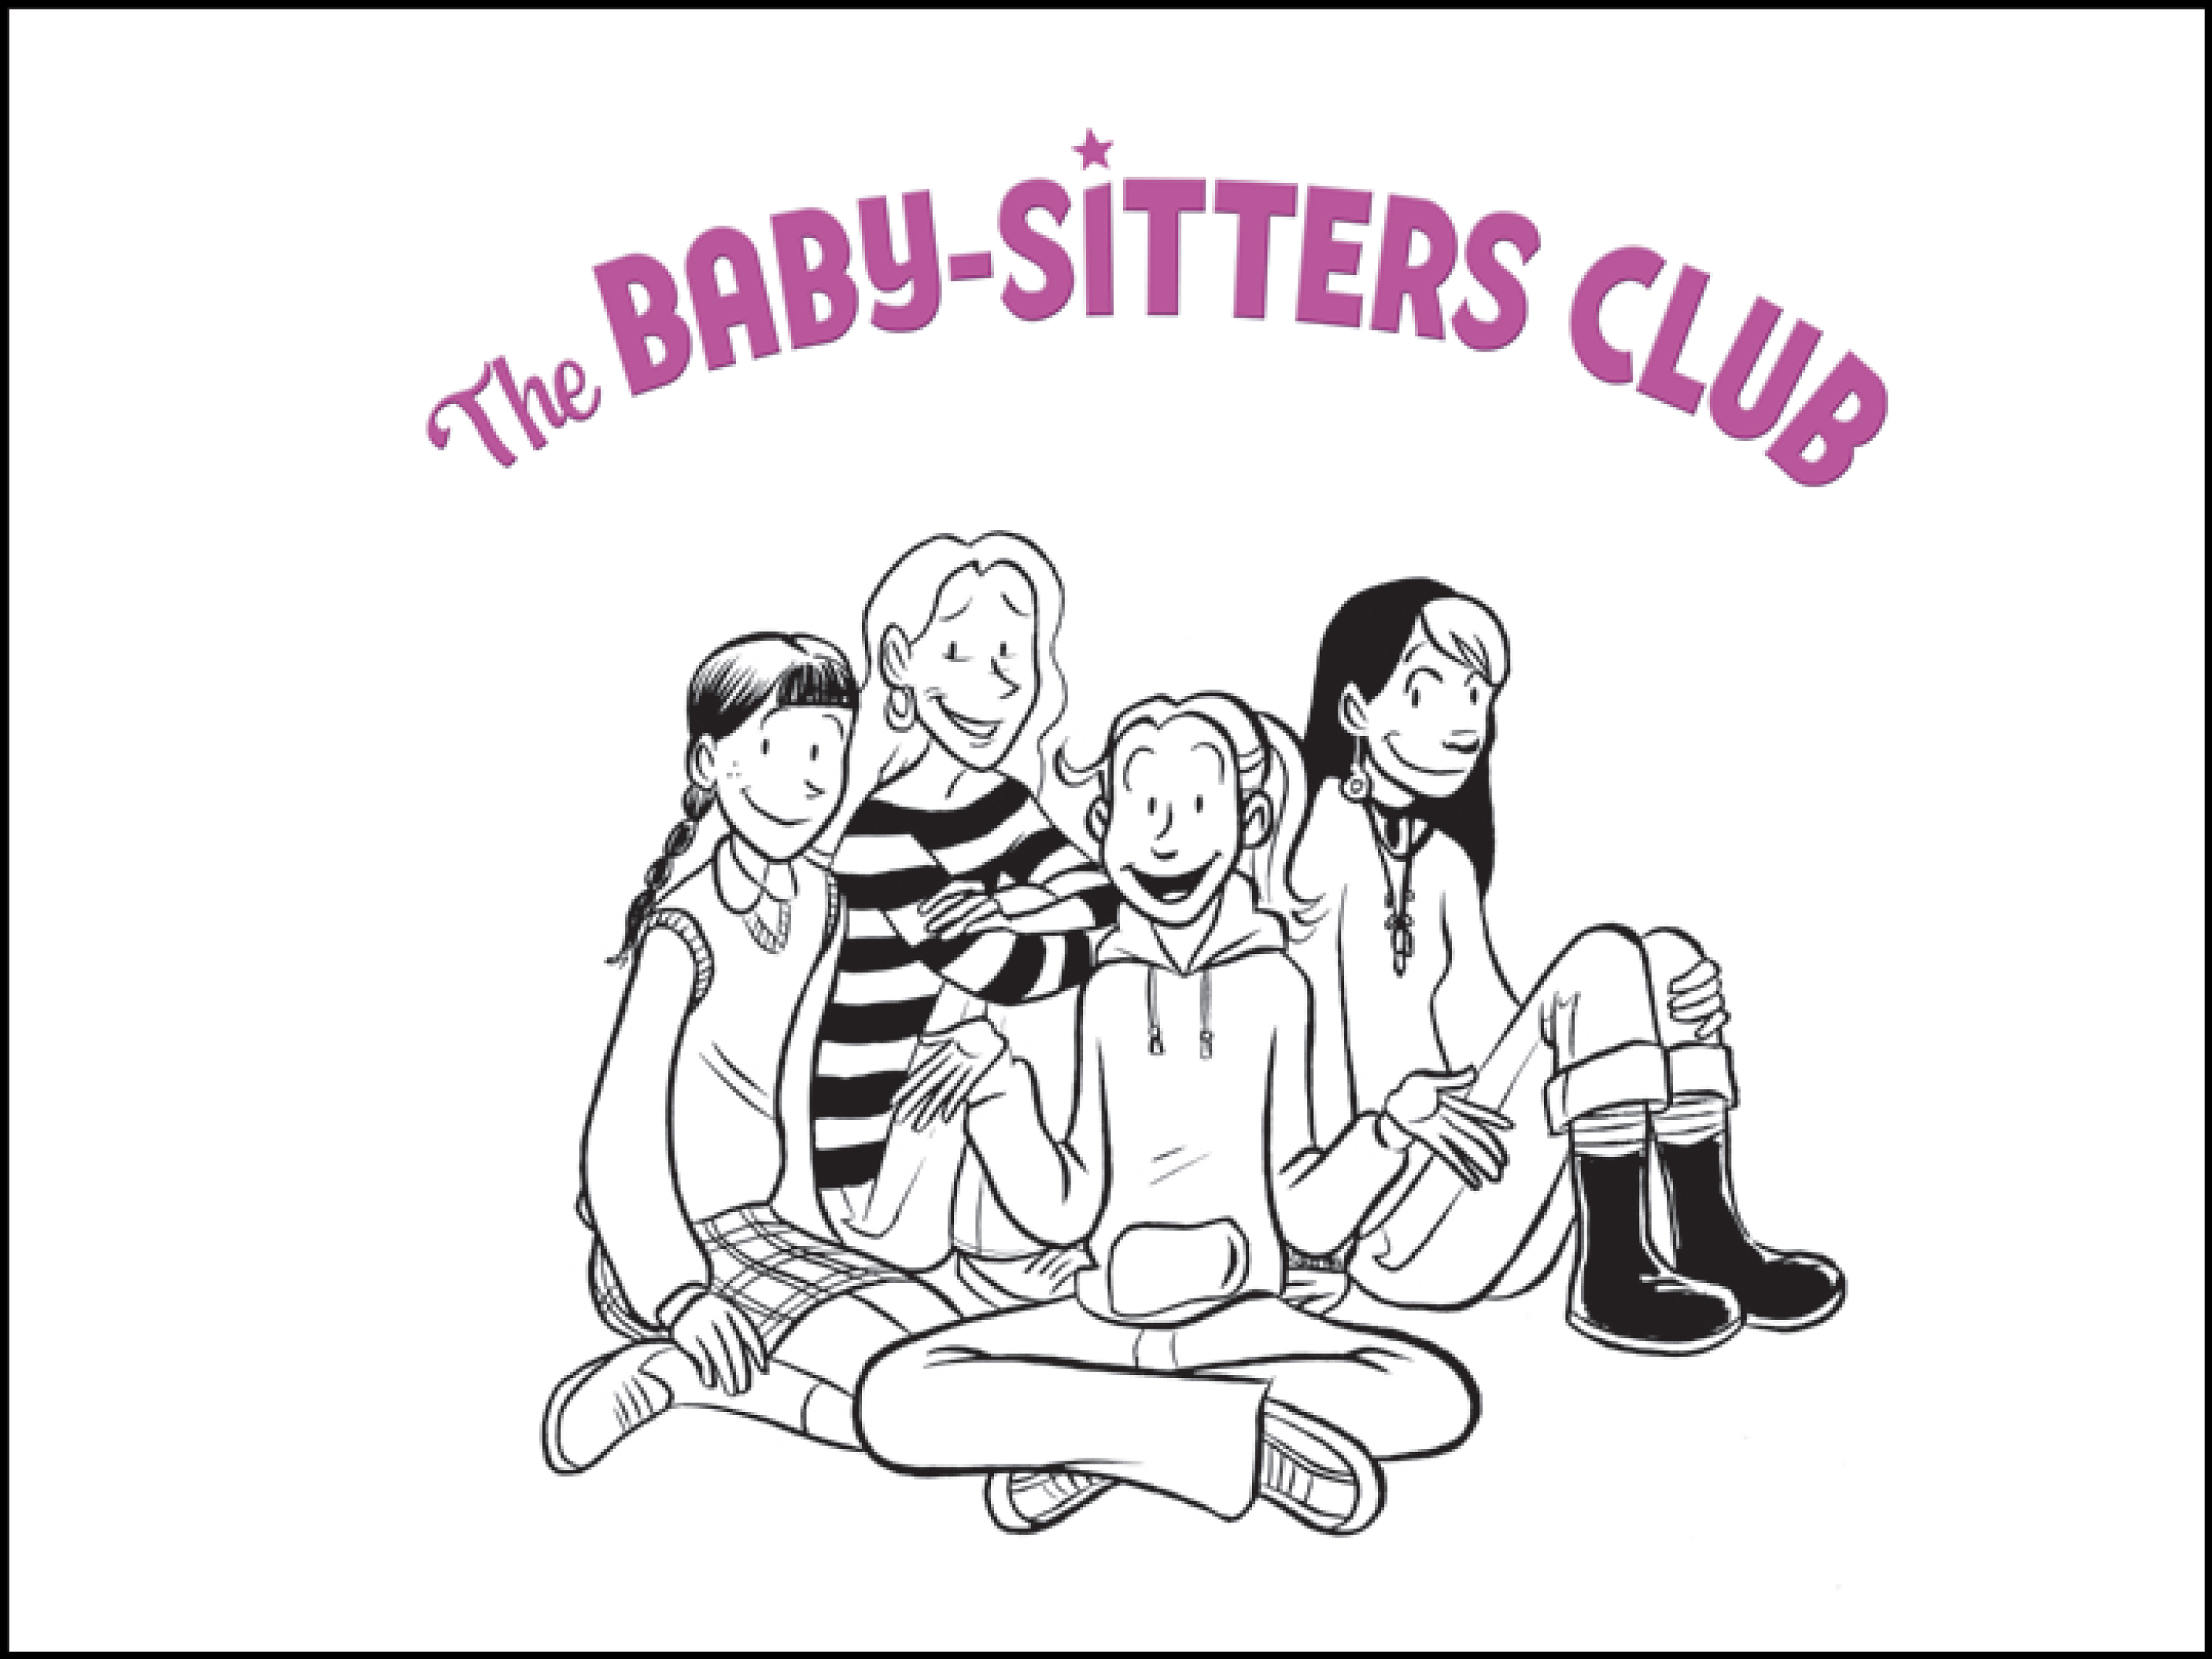 babysitters club coloring pages - photo#5